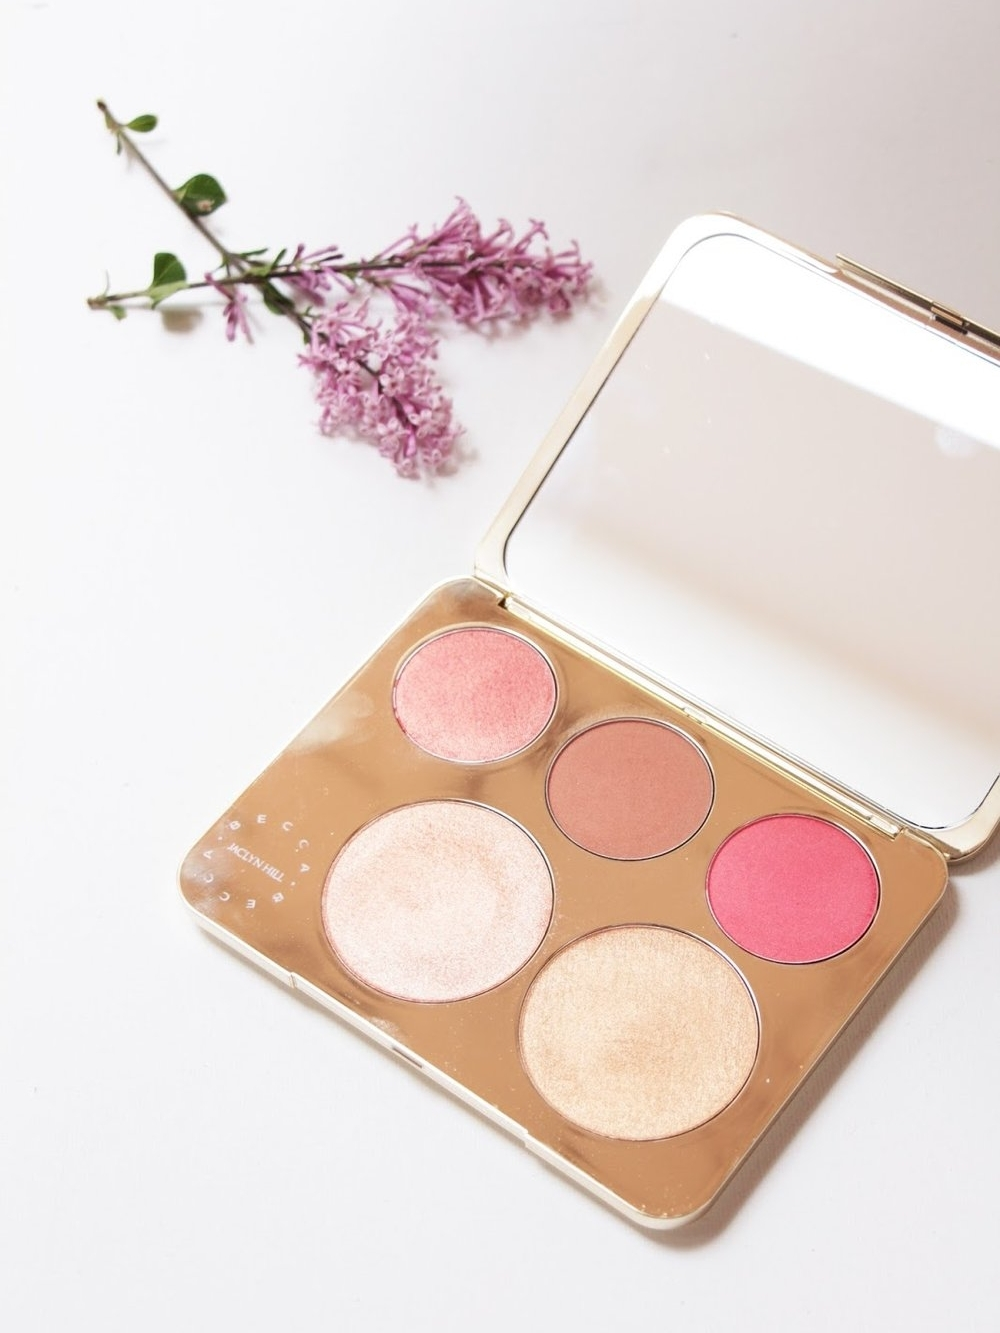 Becca Jaclyn Palette Champagne Samantha Series